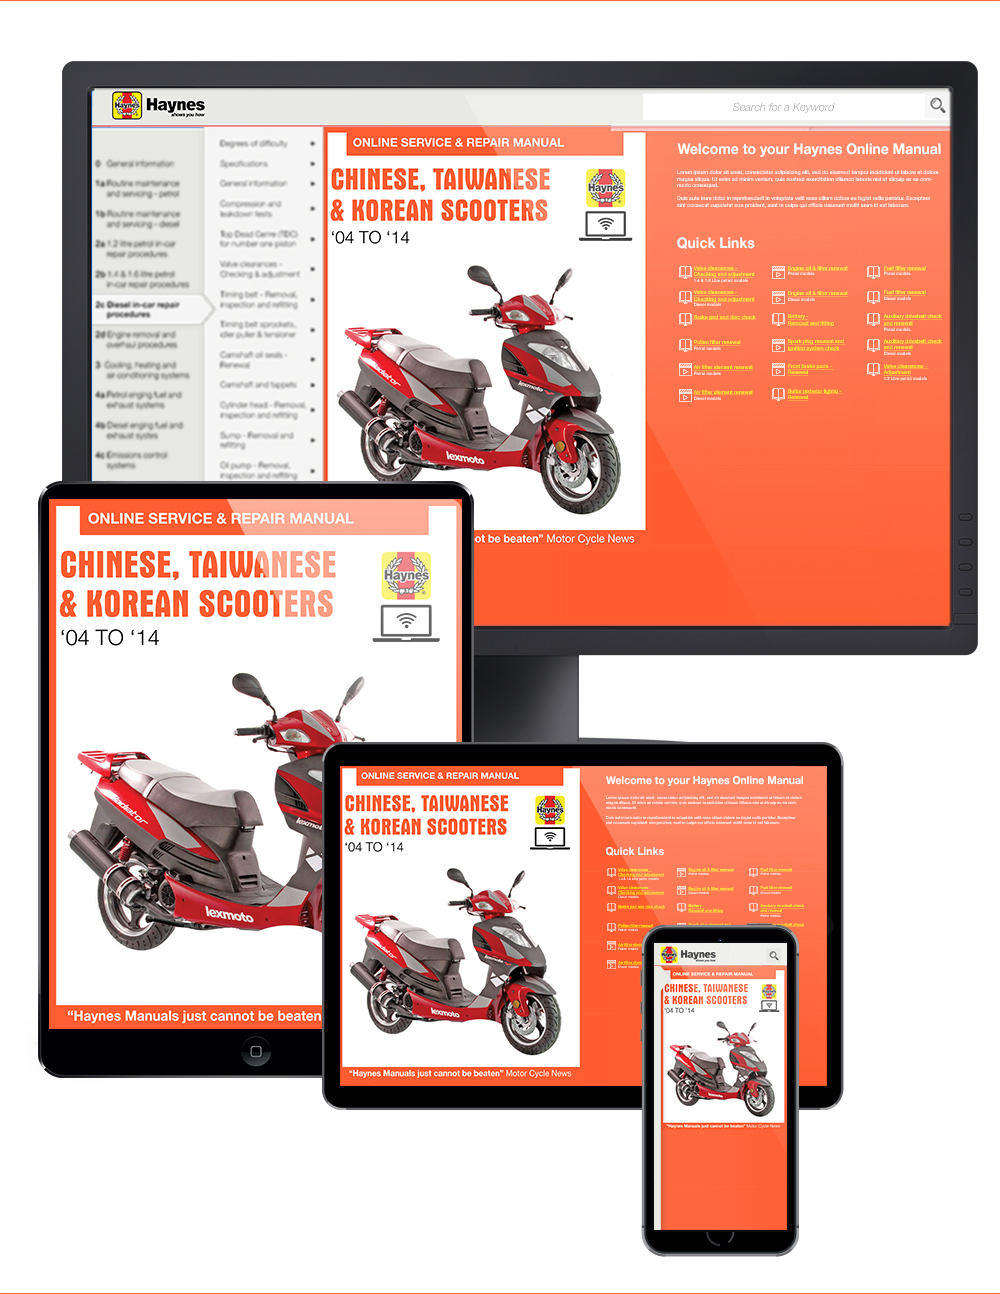 Manual cover for Chinese, Taiwanese & Korean Scooters 50-200cc (04-14) Haynes Online Manual